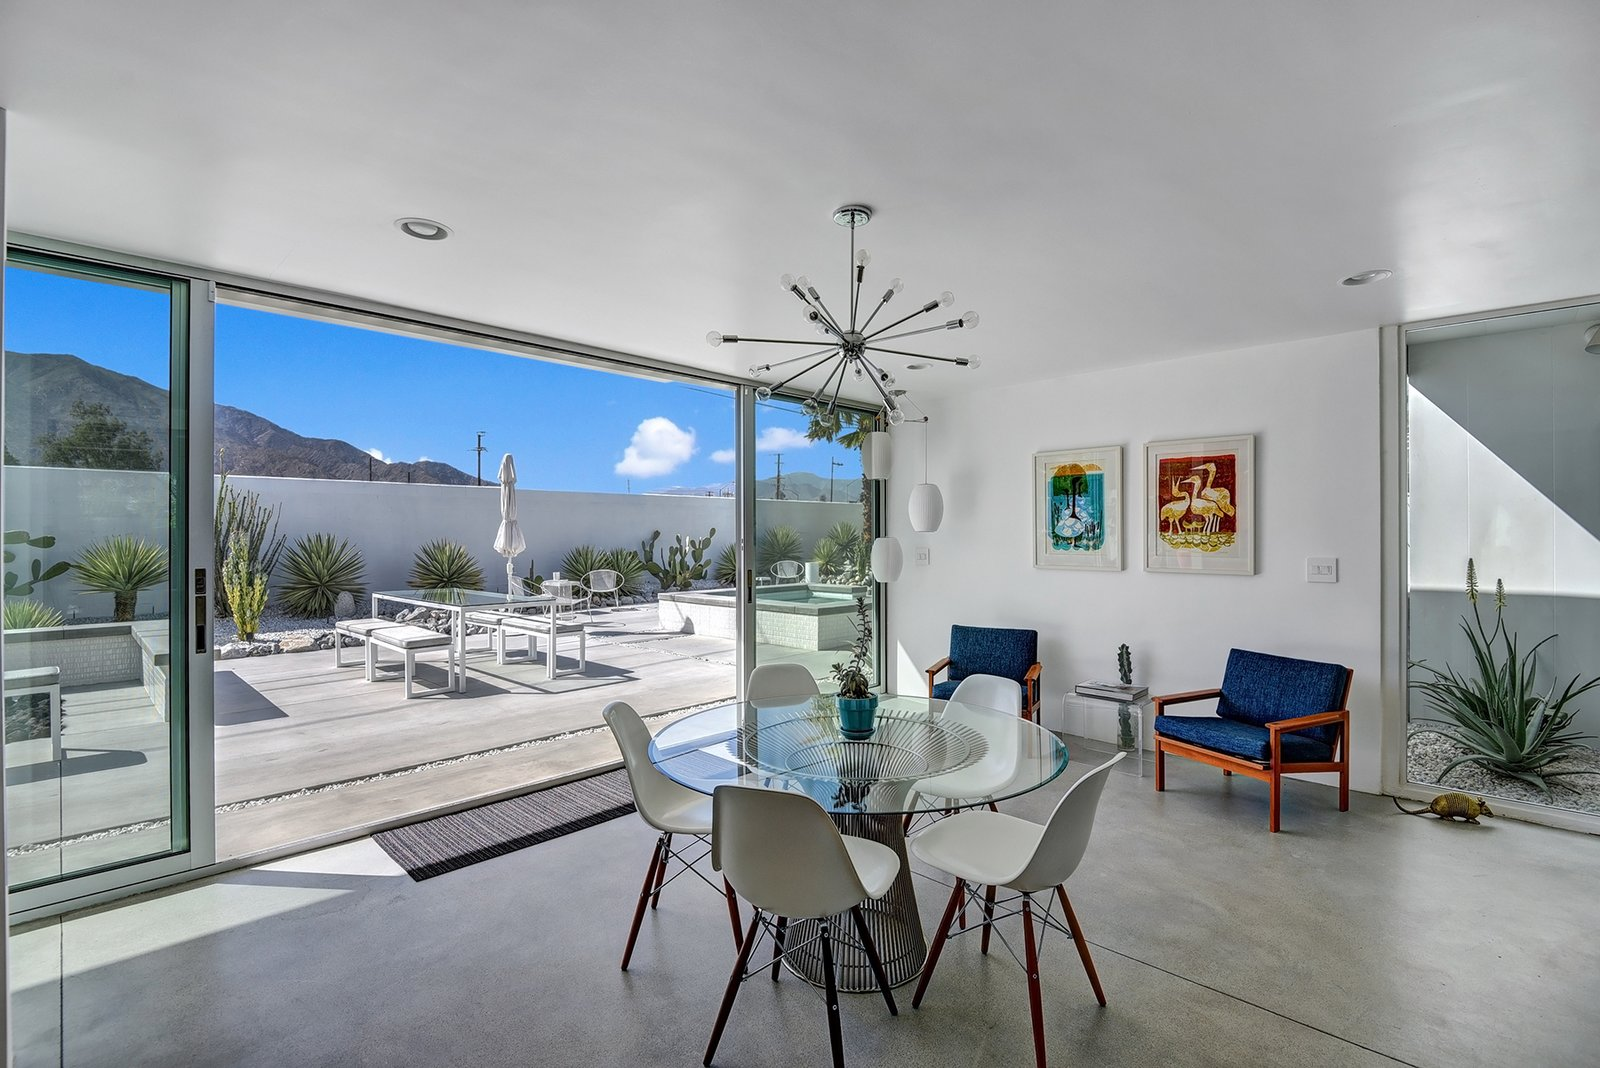 Dining, Lamps, Chair, Ceiling, Floor, Table, and Concrete The 2014 remodel increased light into the home by opening the floor plan.  Best Dining Lamps Table Chair Floor Photos from Donald Wexler Himself Helped Renovate This Palm Springs Prefab Rental